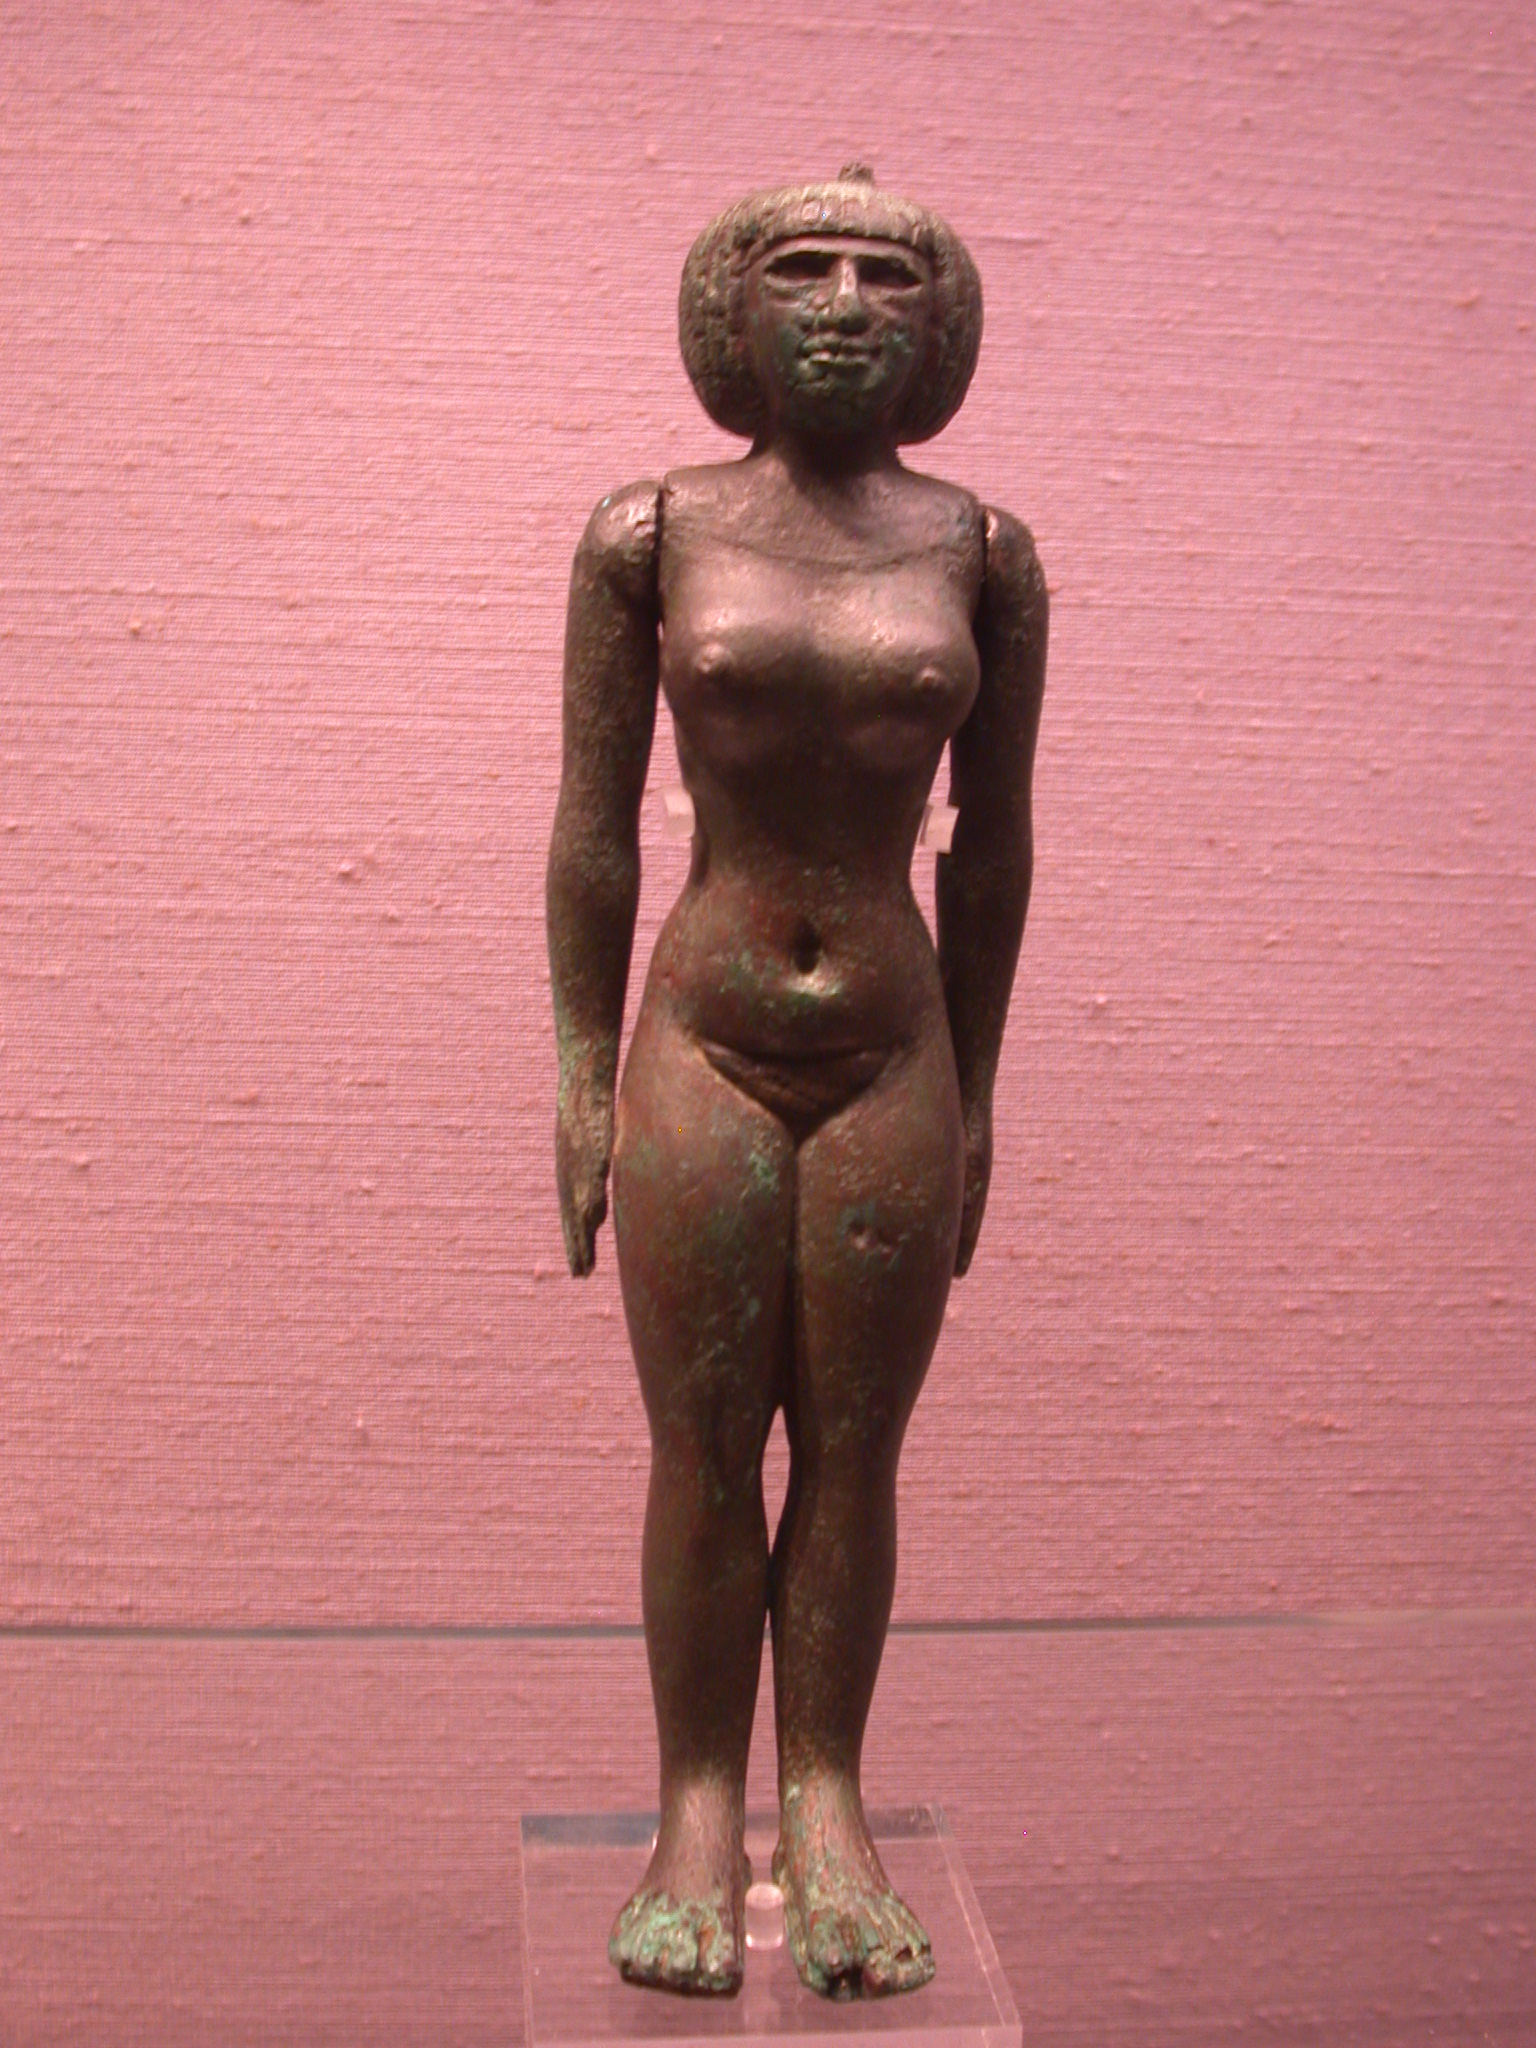 Nubian Fertility Figurine With Short Wig, Copper Alloy, 25th Dynasty, 746-664 BCE, Egypt, in Fitzwilliam Museum, Cambridge, England